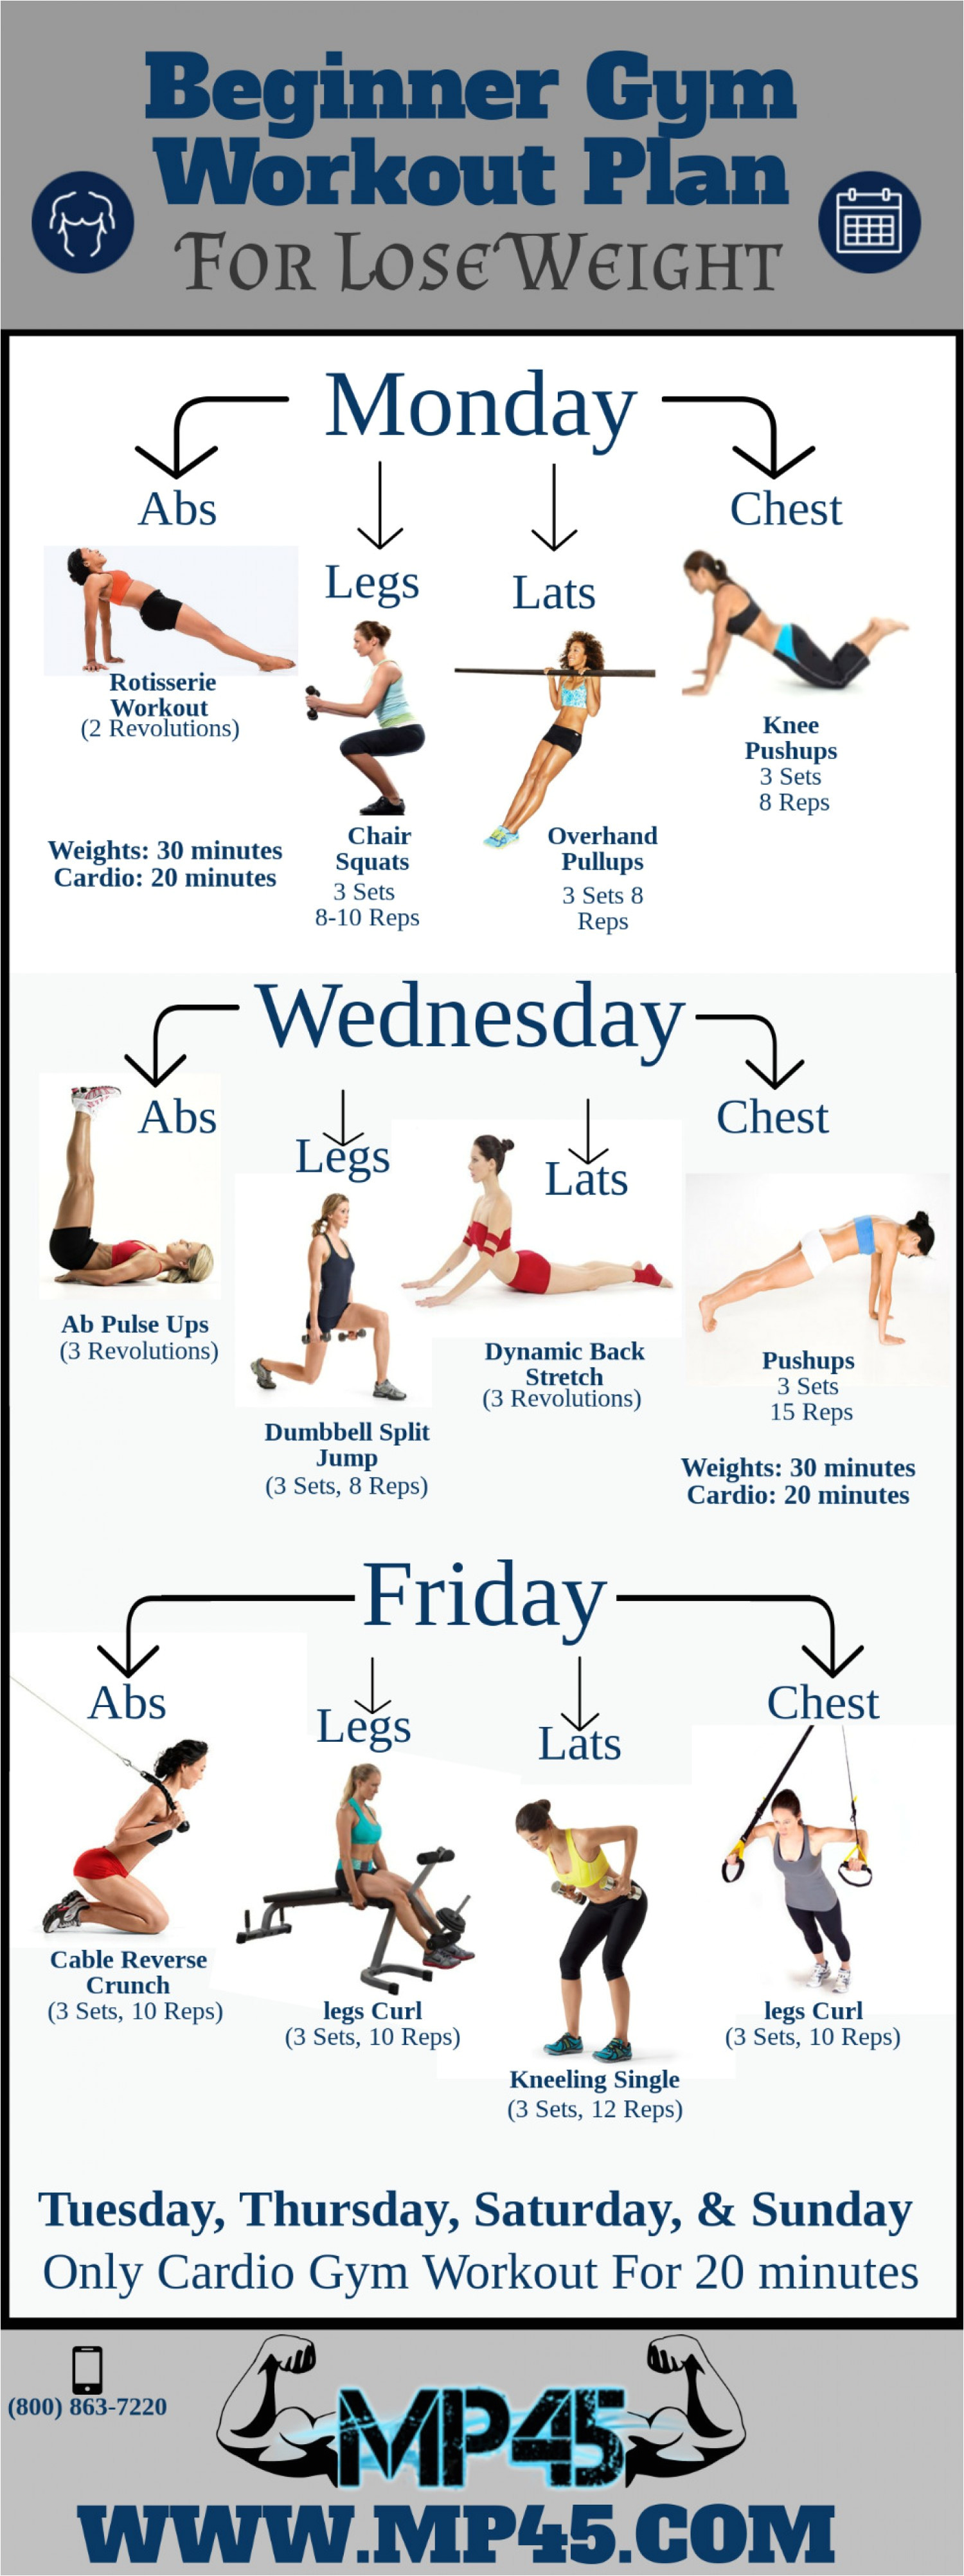 cardio gym workout plan for beginners